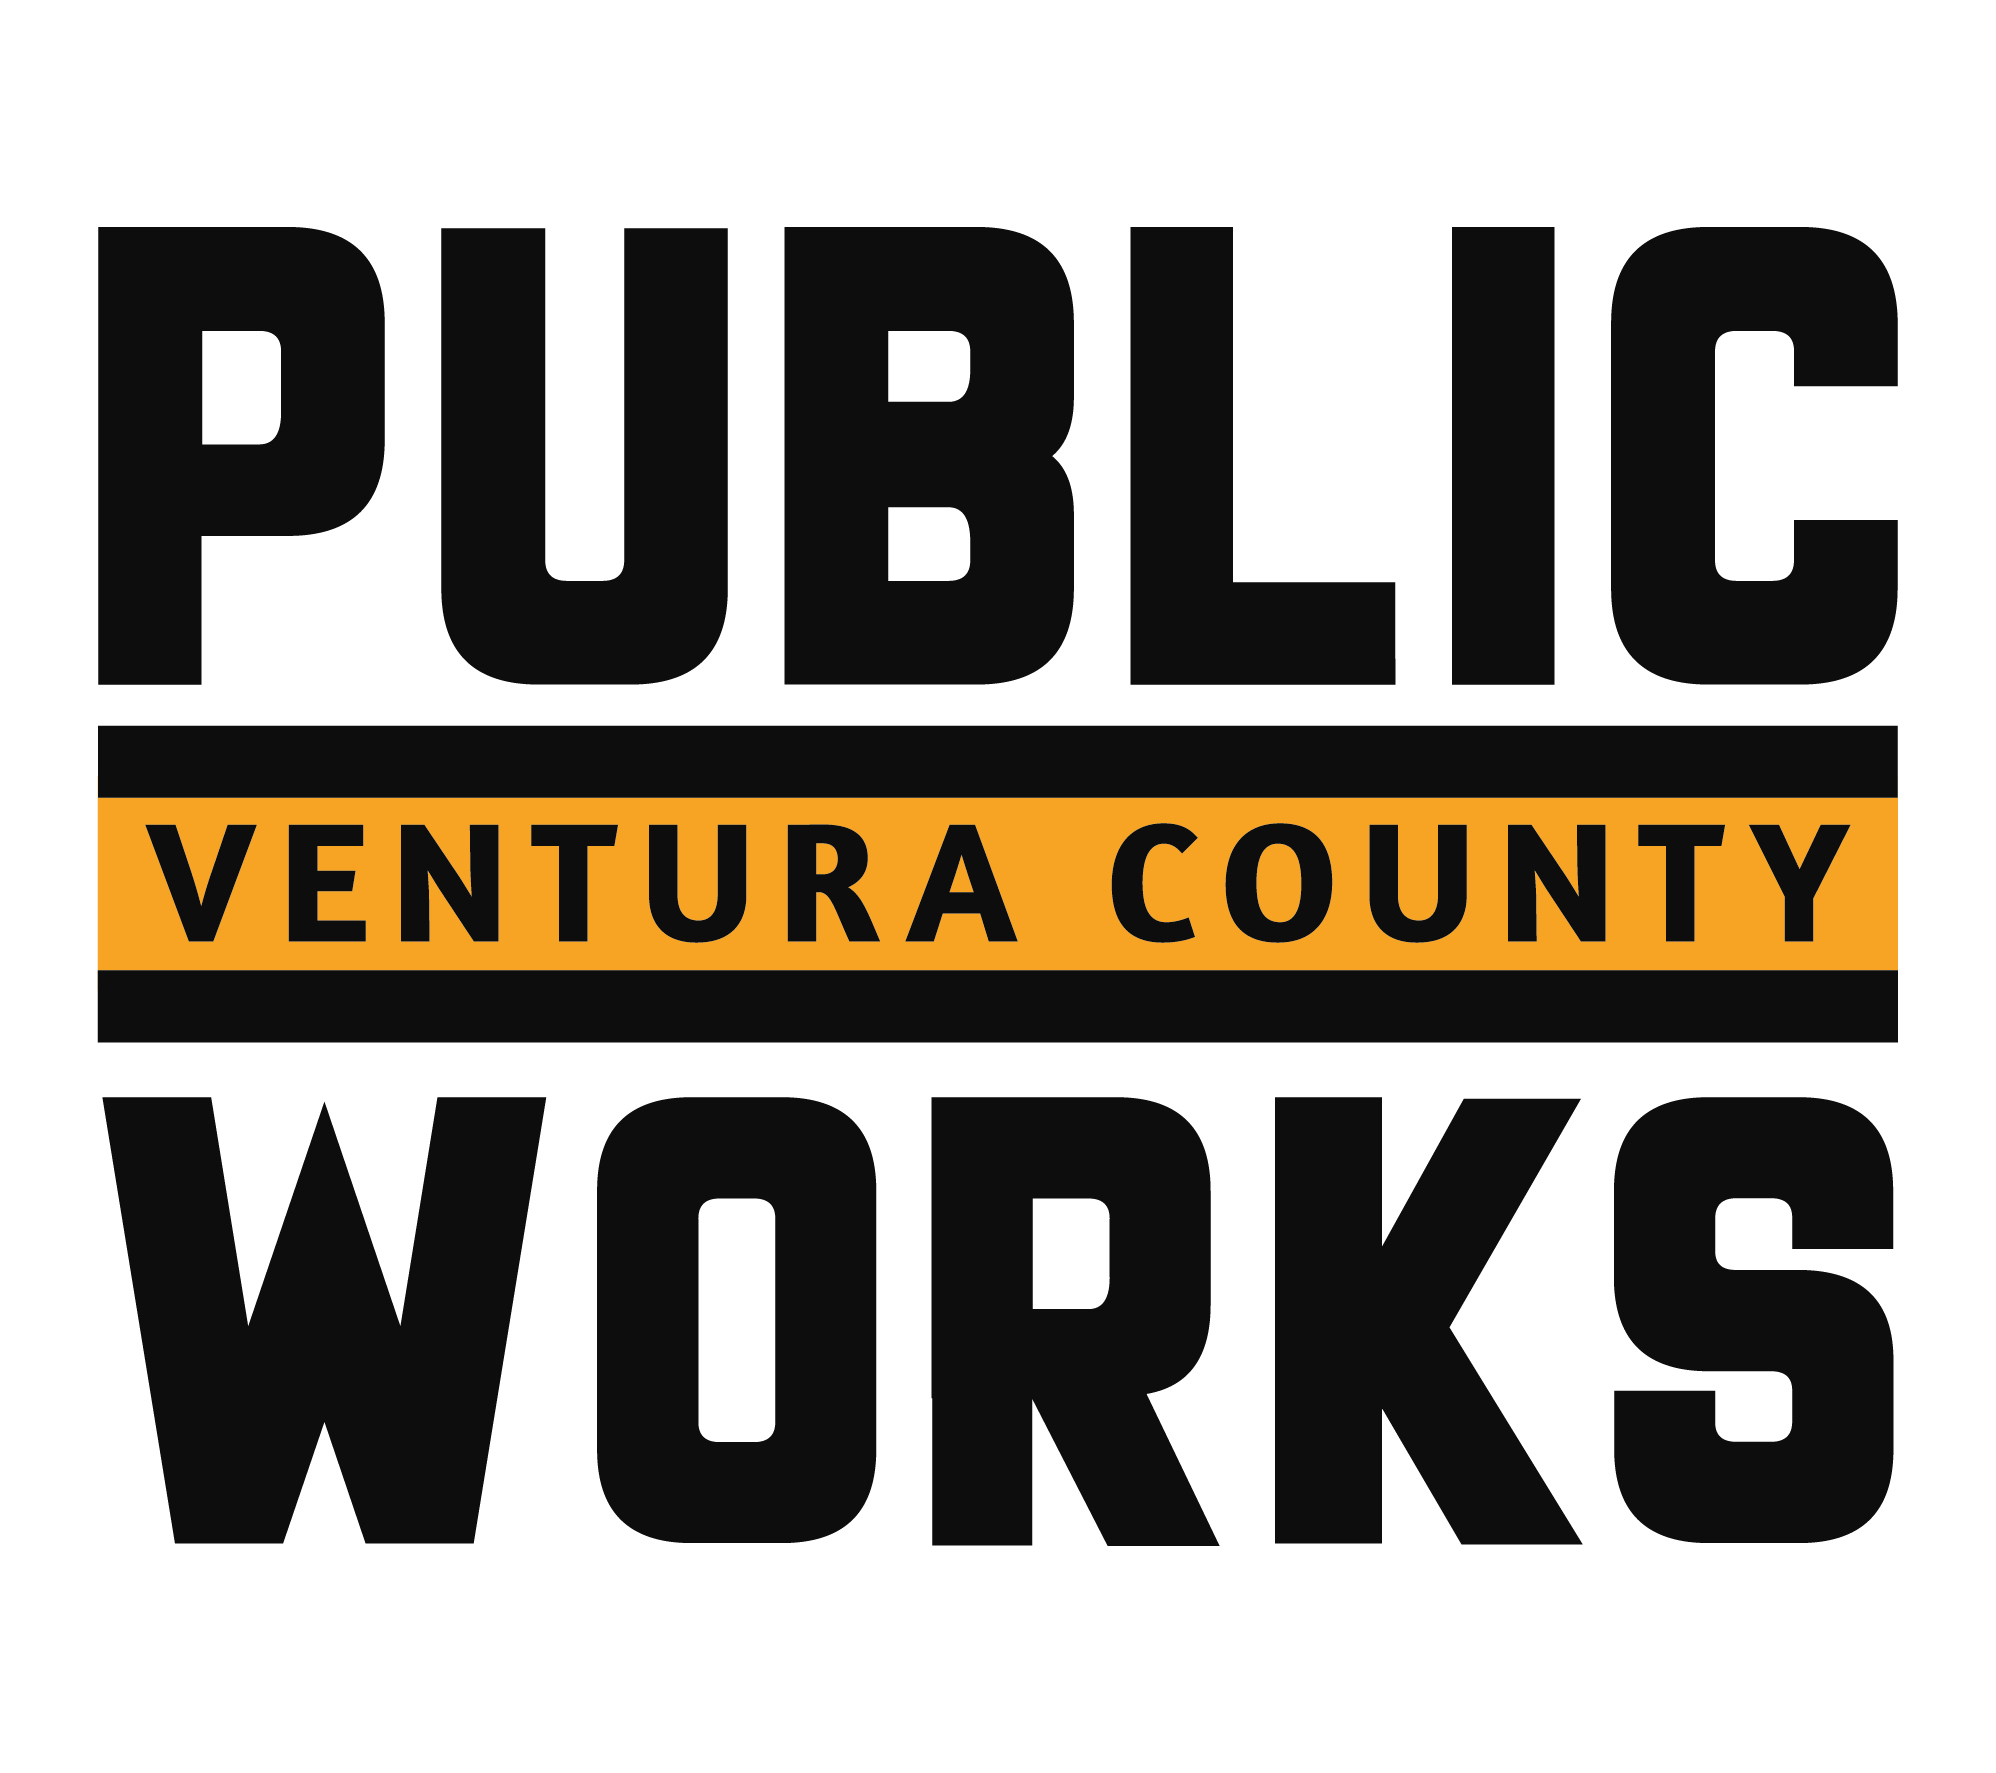 Ventura County Watershed Protection District